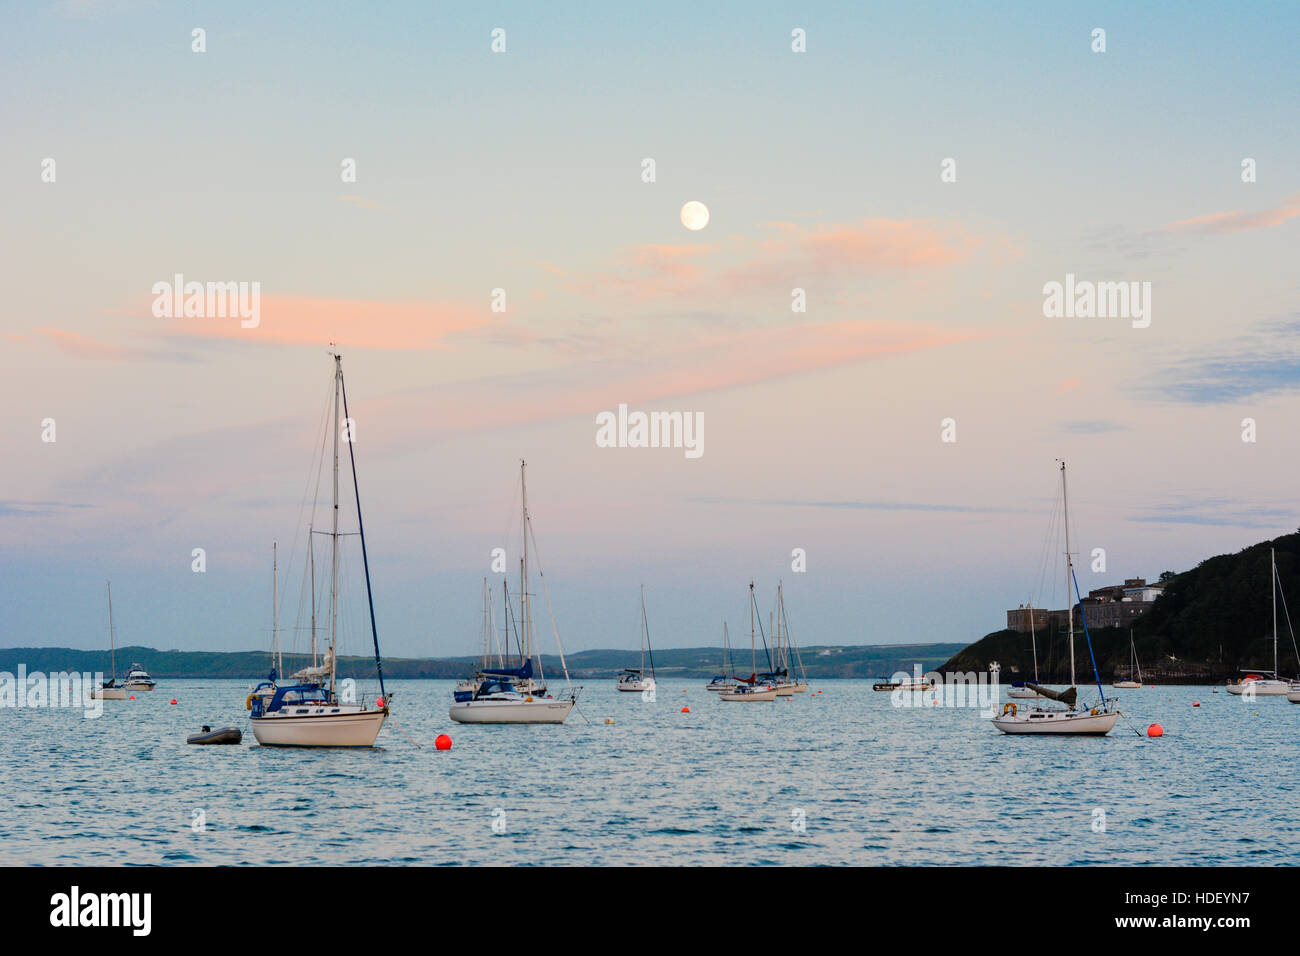 Full moon over yachts anchored on a calm turquoise sea with red cirrus clouds. - Stock Image